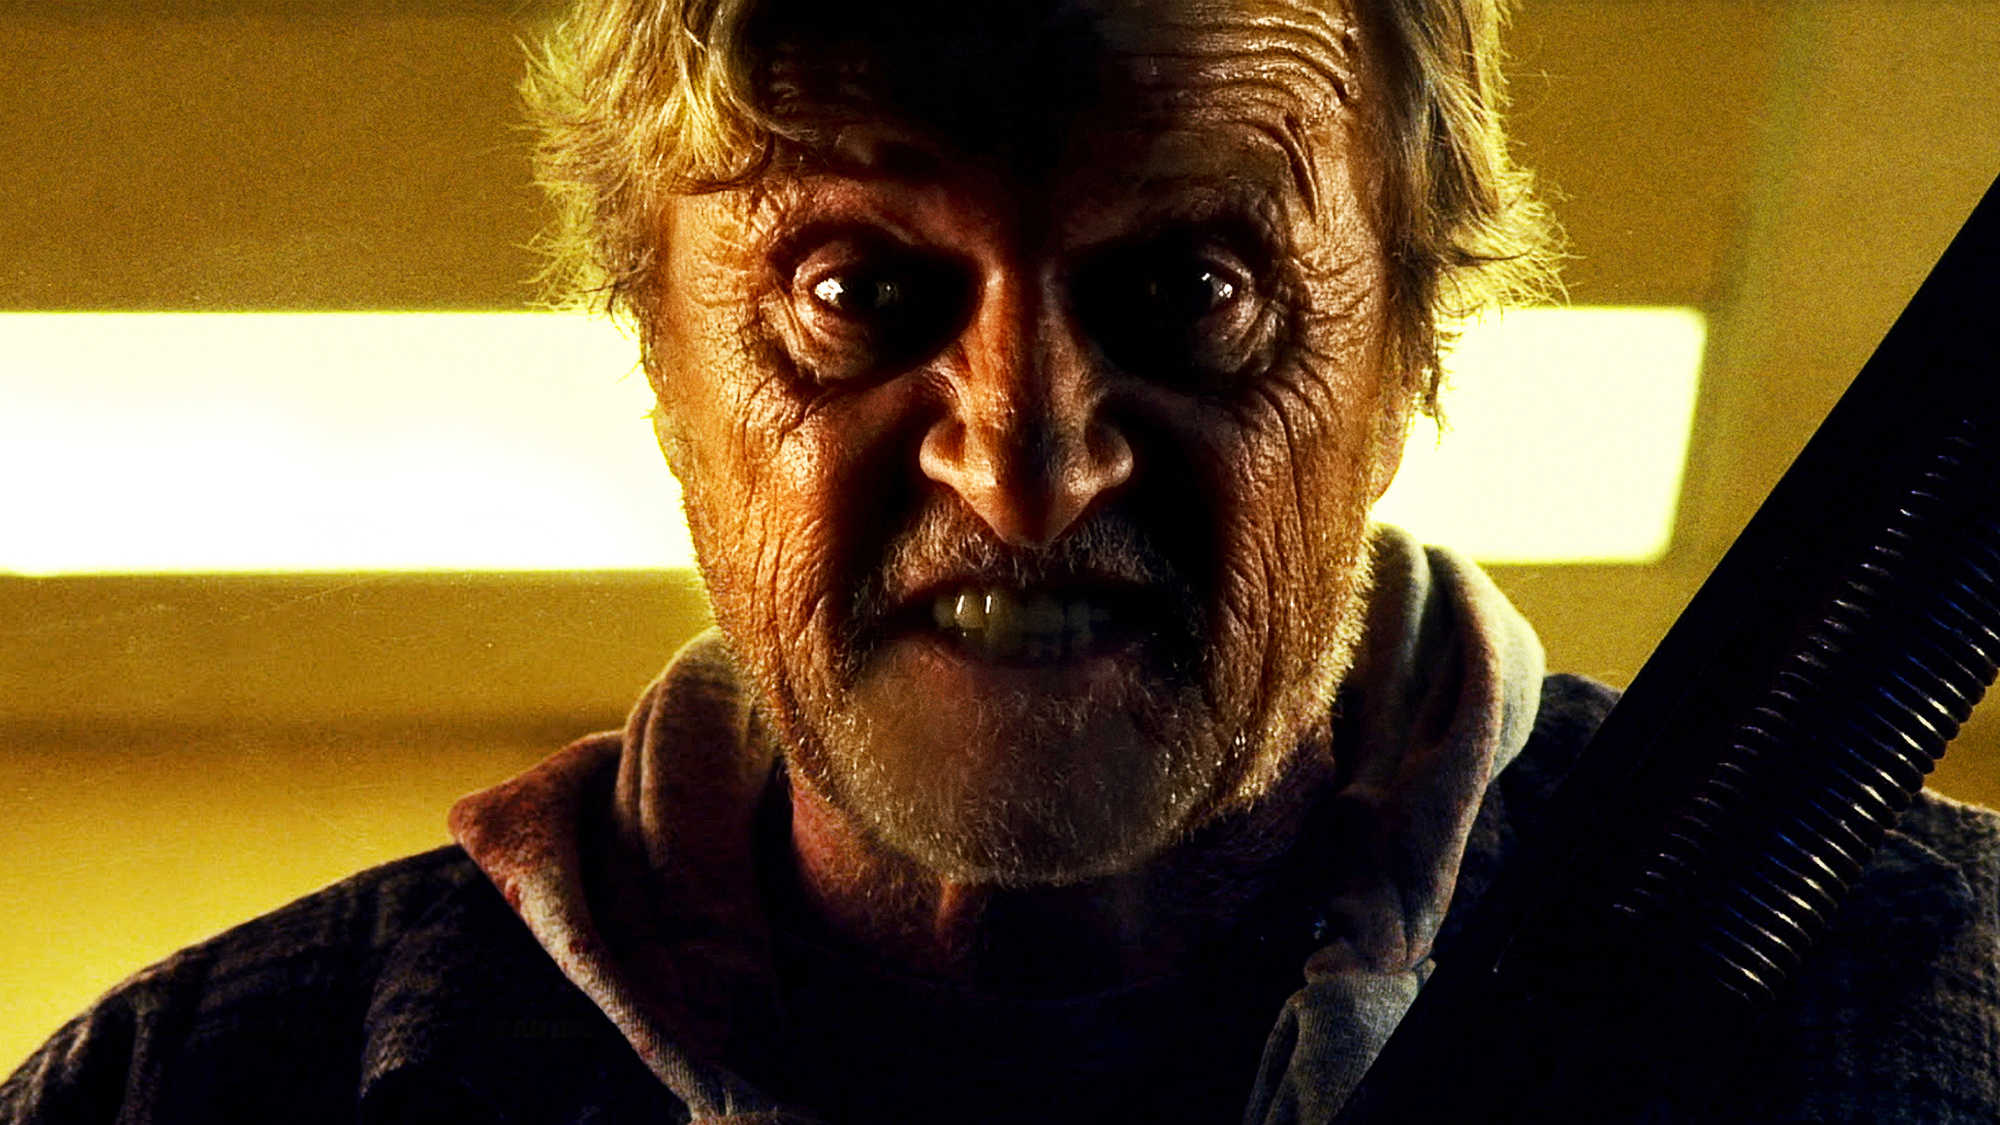 The Hobo (Rutger Hauer) goes on the revenge trail in Hobo with a Shotgun (2011)